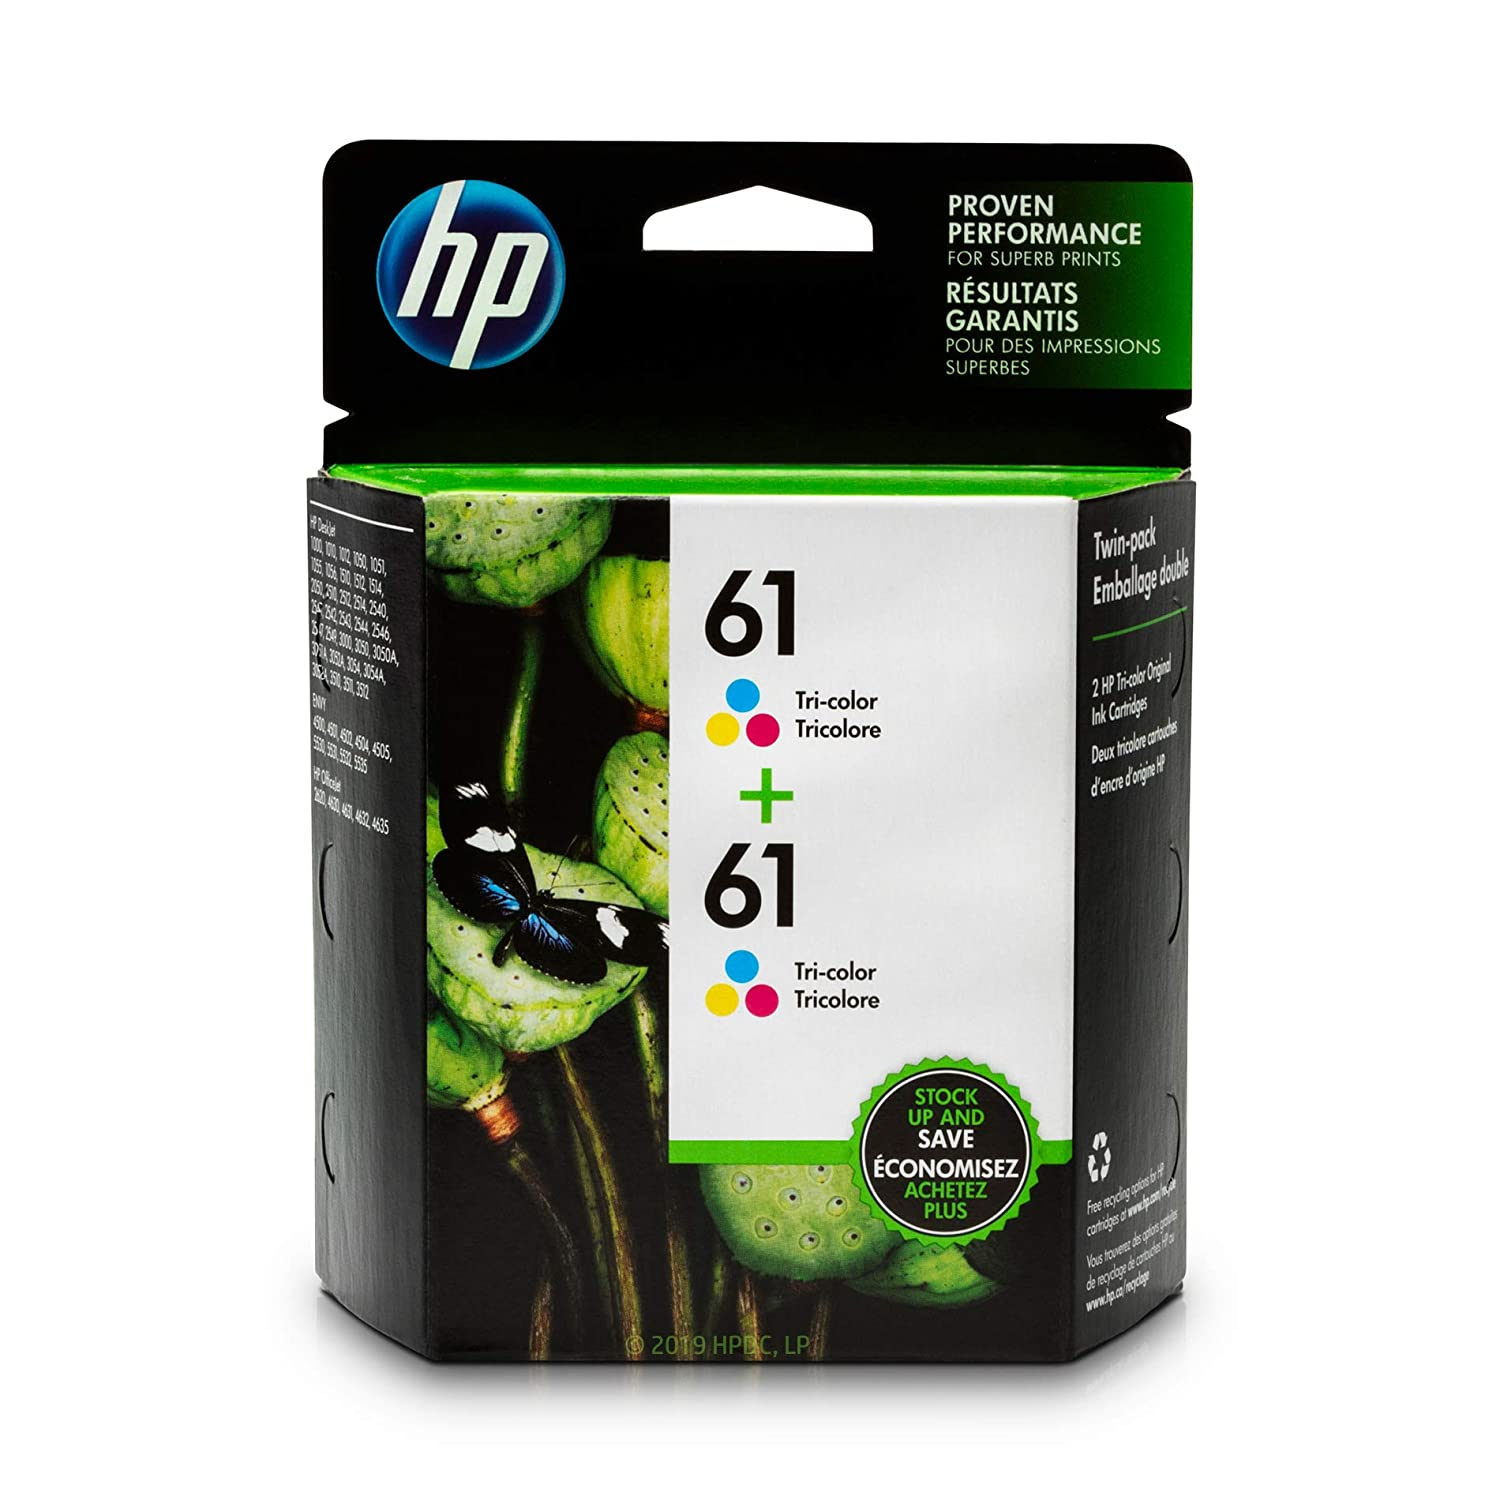 HP 61 Tri-color Ink Cartridge (CH562WN), 2 Ink Cartridges (CZ074FN) for HP Deskjet 1000 1010 1012 1050 1051 1055 1056 1510 1512 1514 1051 2050 2510 2512 2514 2540 2541